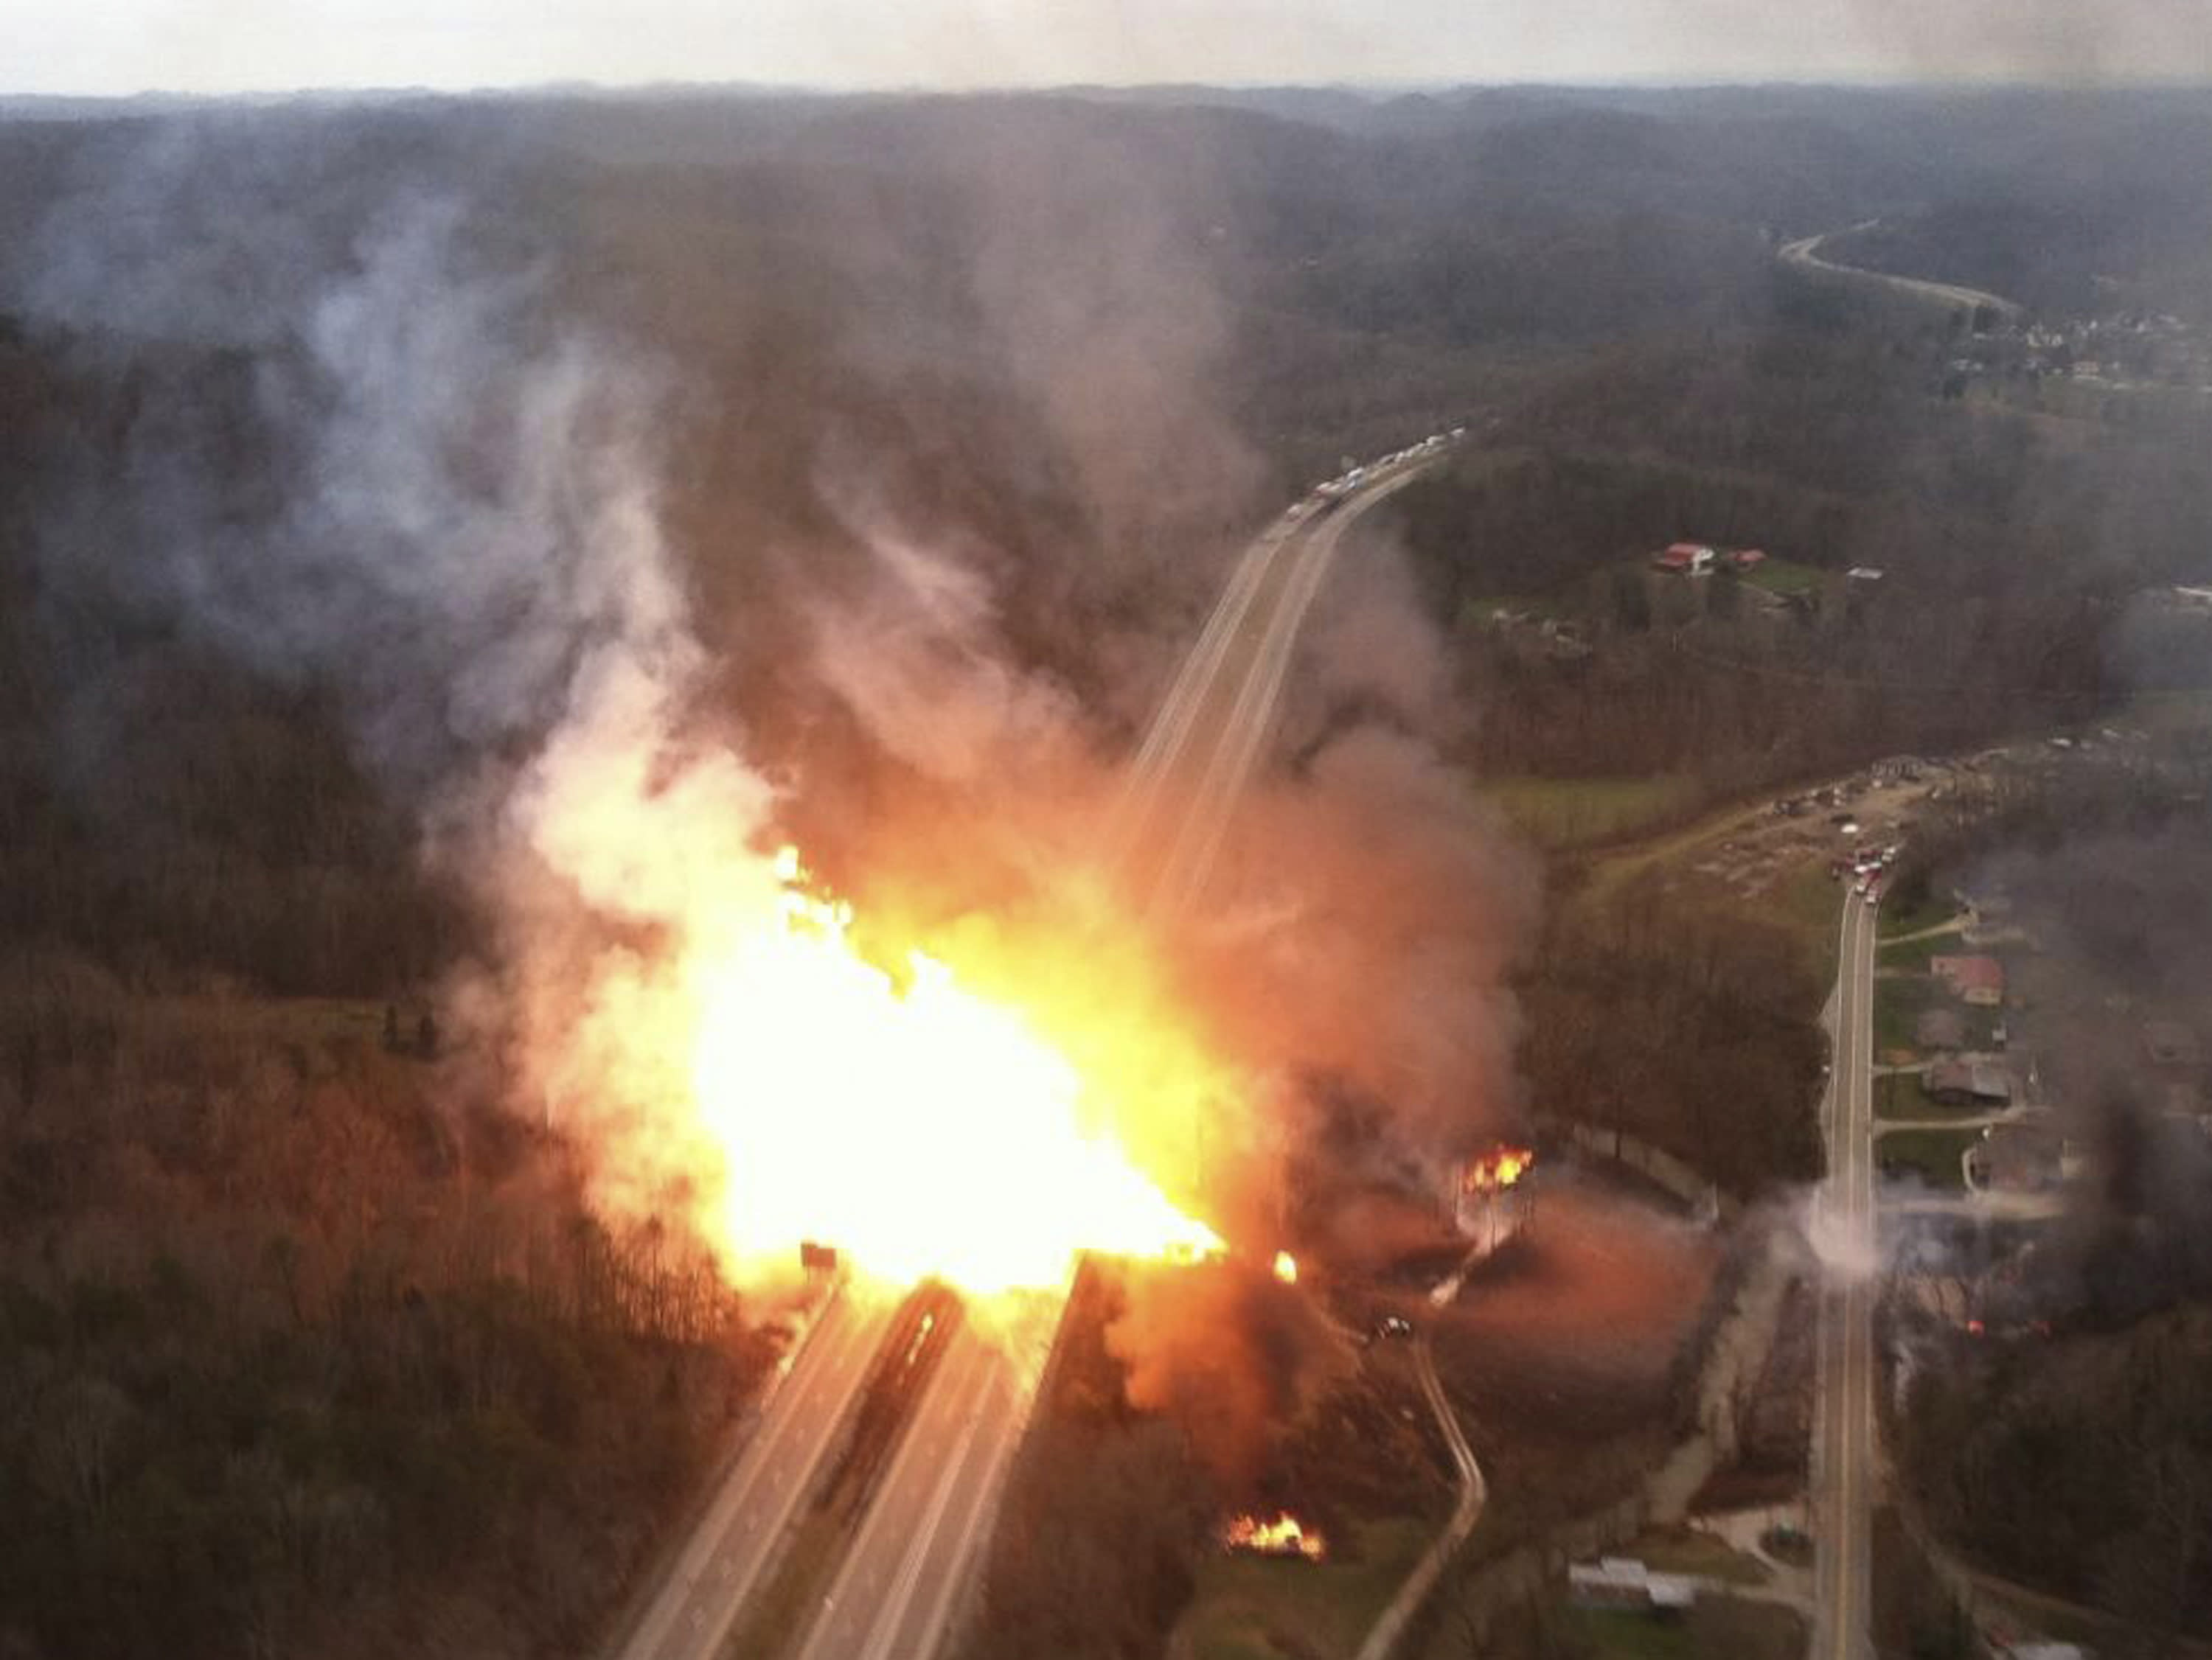 NTSB: Systemic flaws in safety oversight of gas pipelines